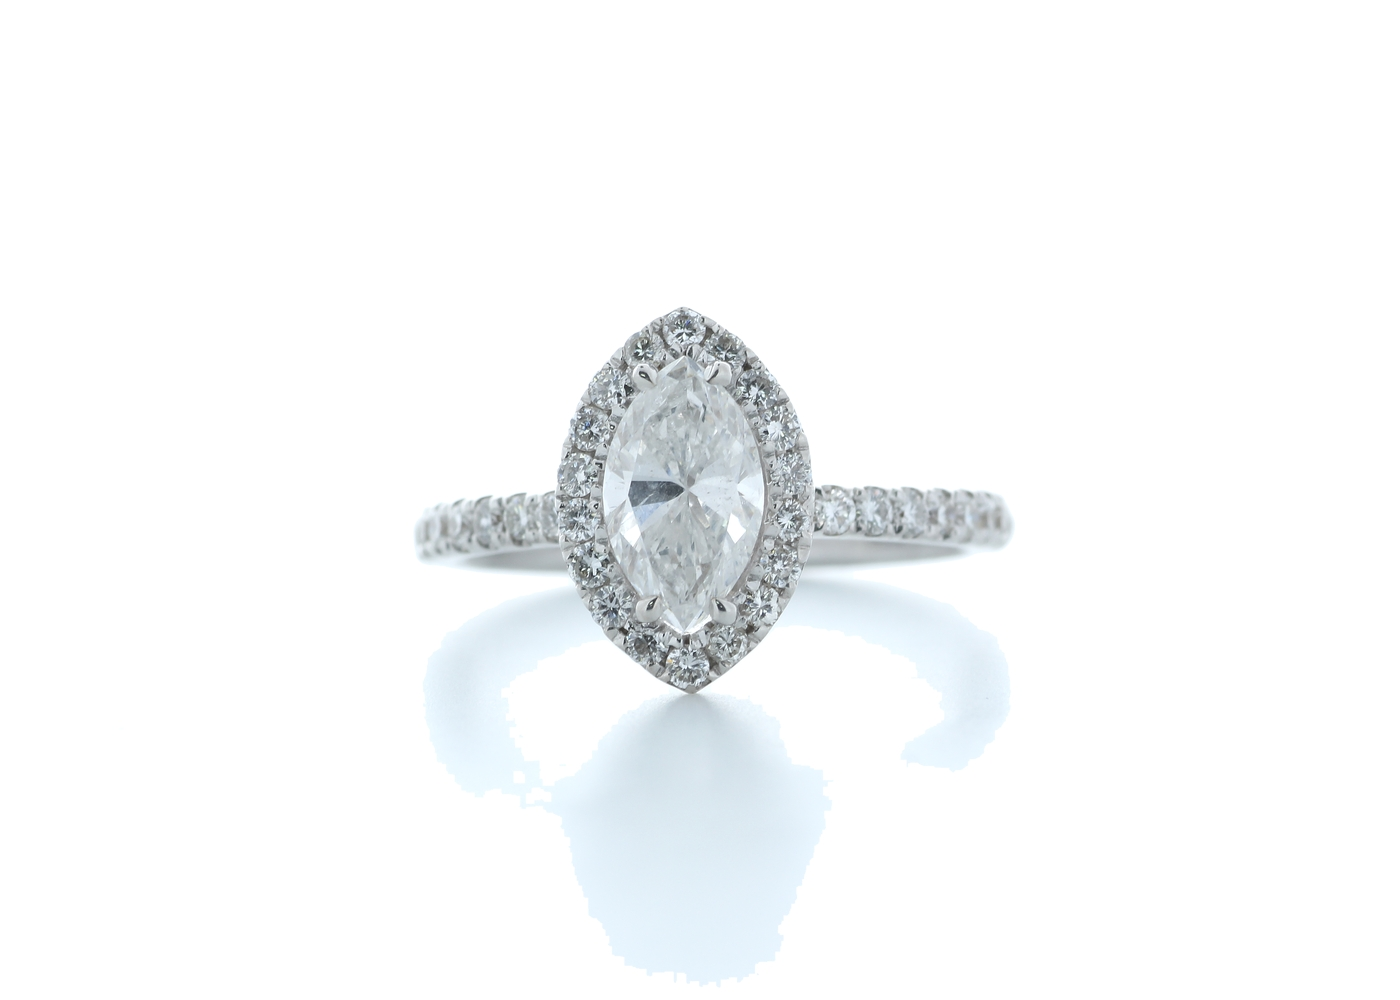 18ct White Gold Marquise Diamond With Halo Setting Ring 1.51 (1.02) Carats